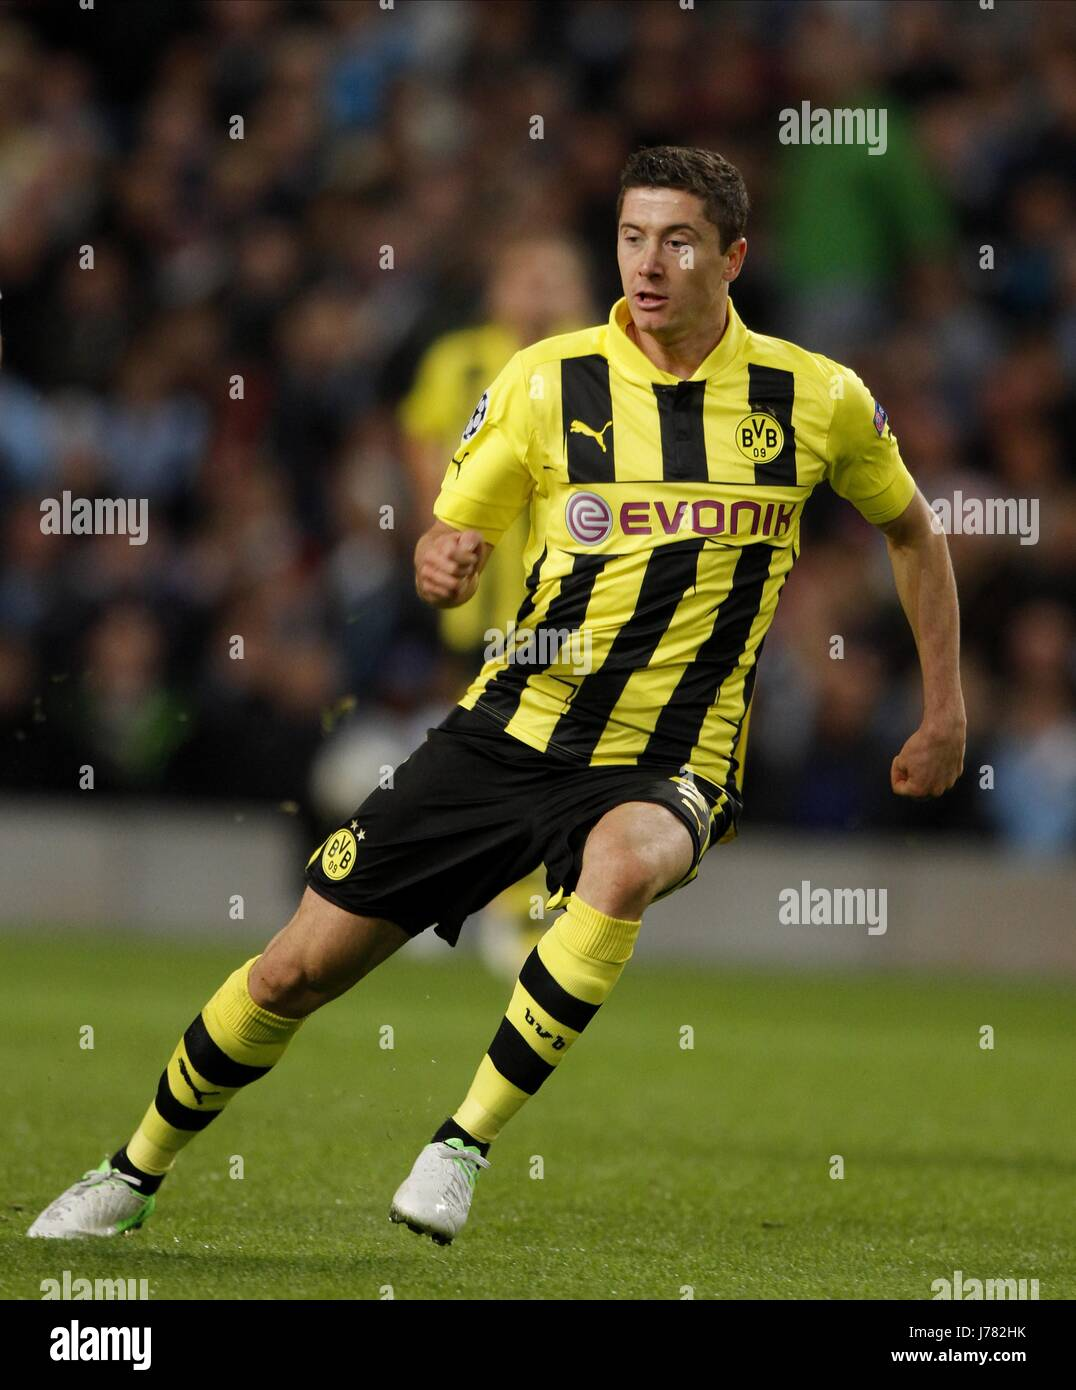 uk availability ae995 bd2fa ROBERT LEWANDOWSKI BORUSSIA DORTMUND ETIHAD STADIUM ...